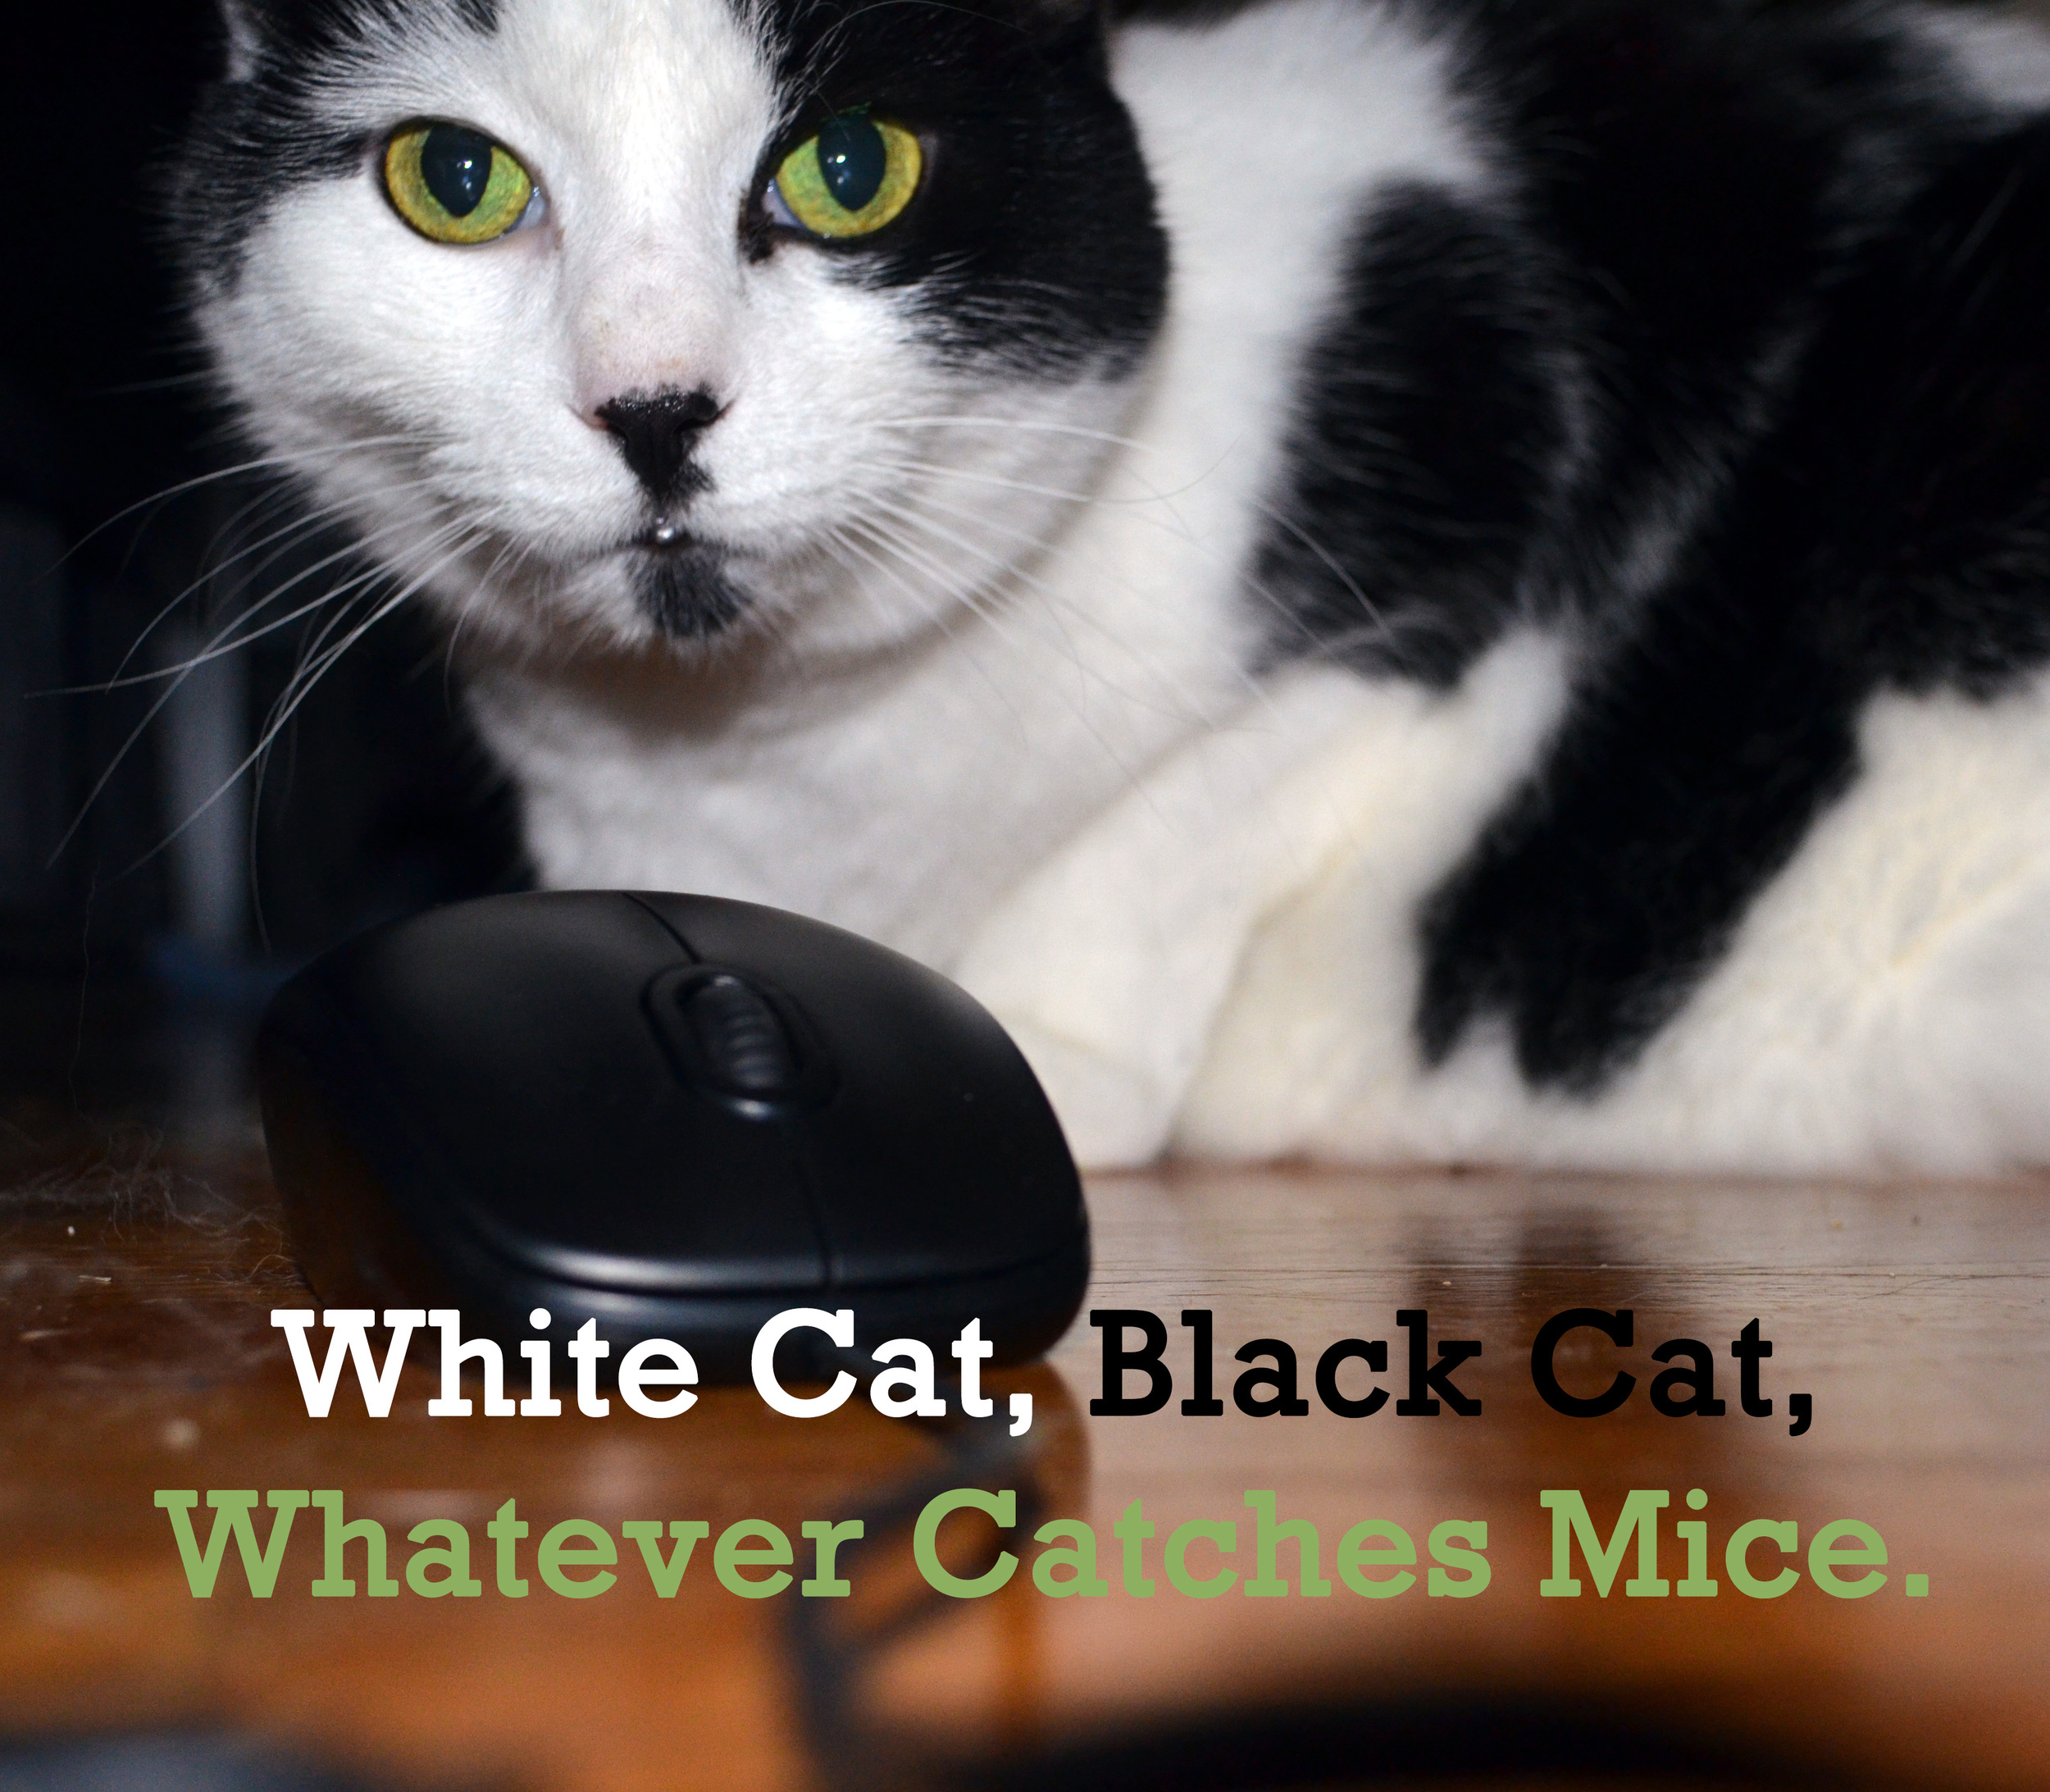 But am I a white cat with black spots or a black cat with white spots?